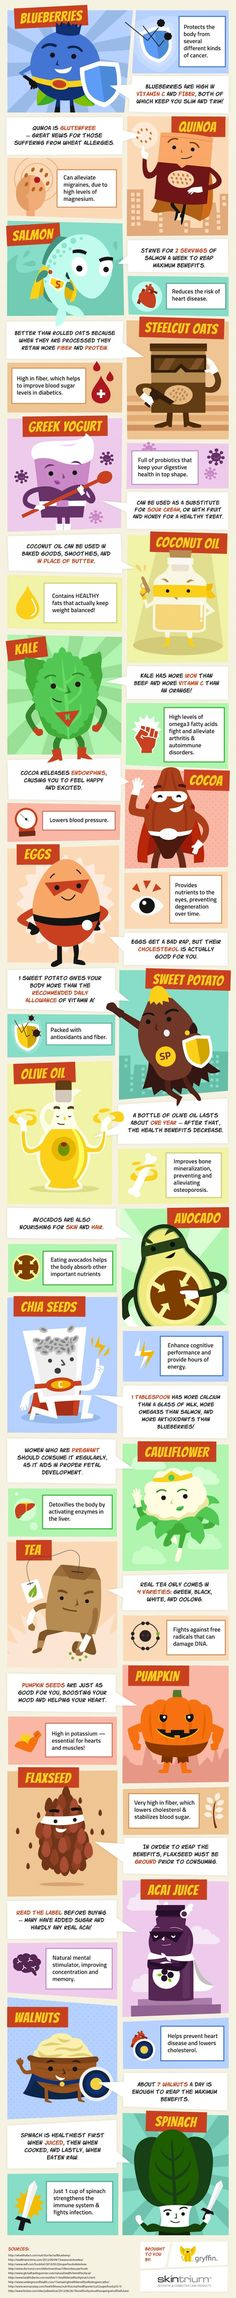 A guide to 20 Superfoods and their benefits!.